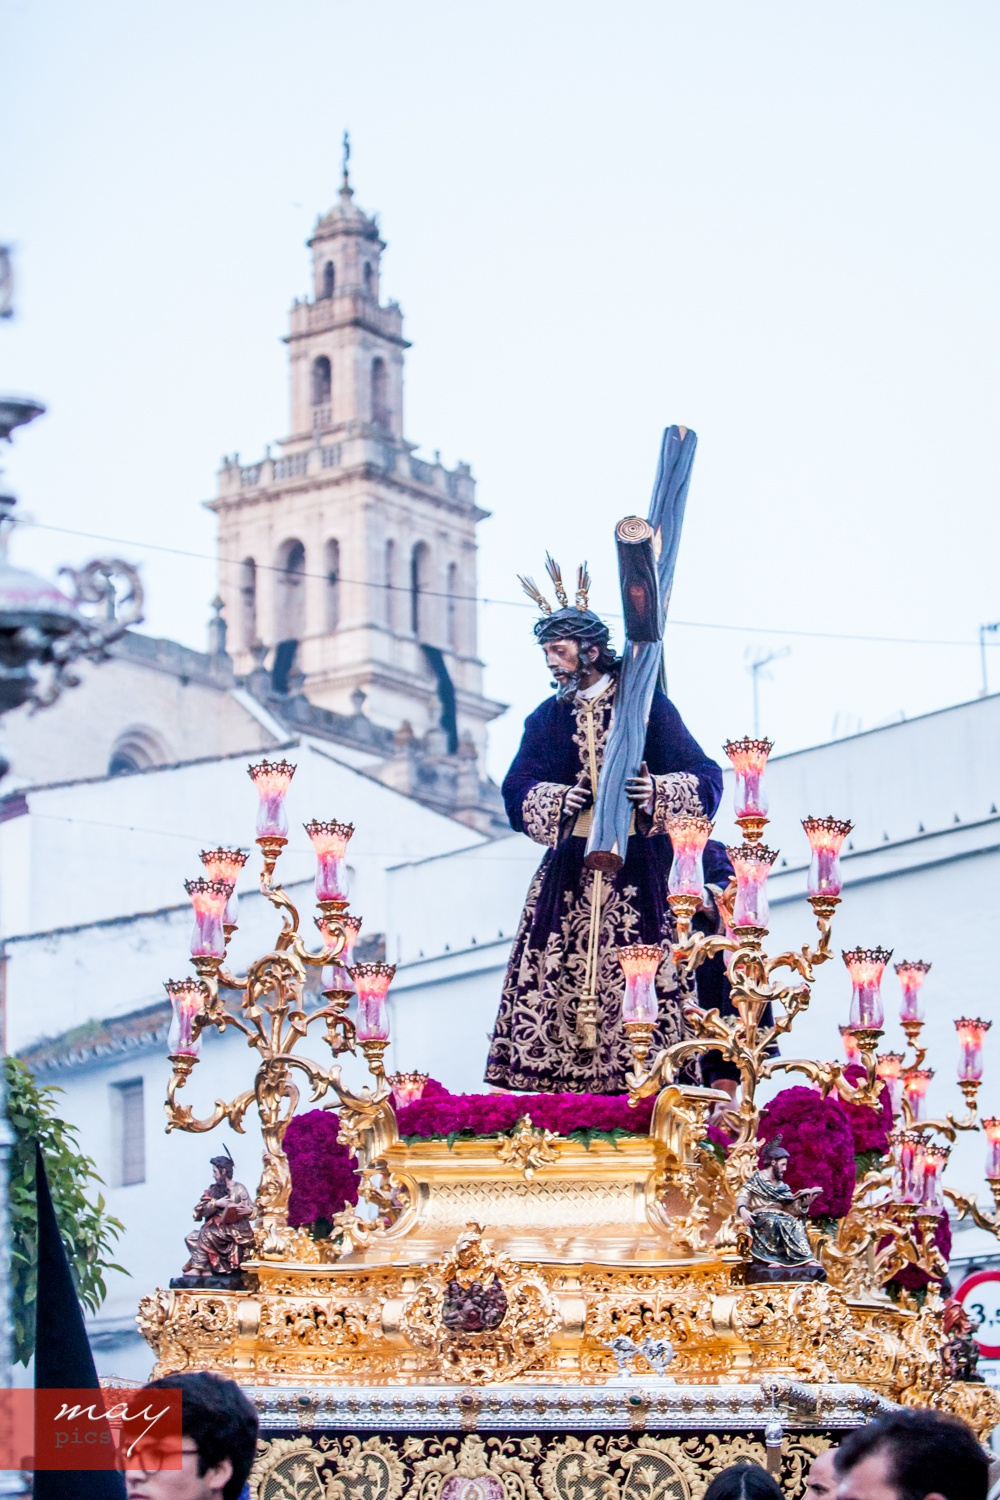 06Dolores_MG_9728